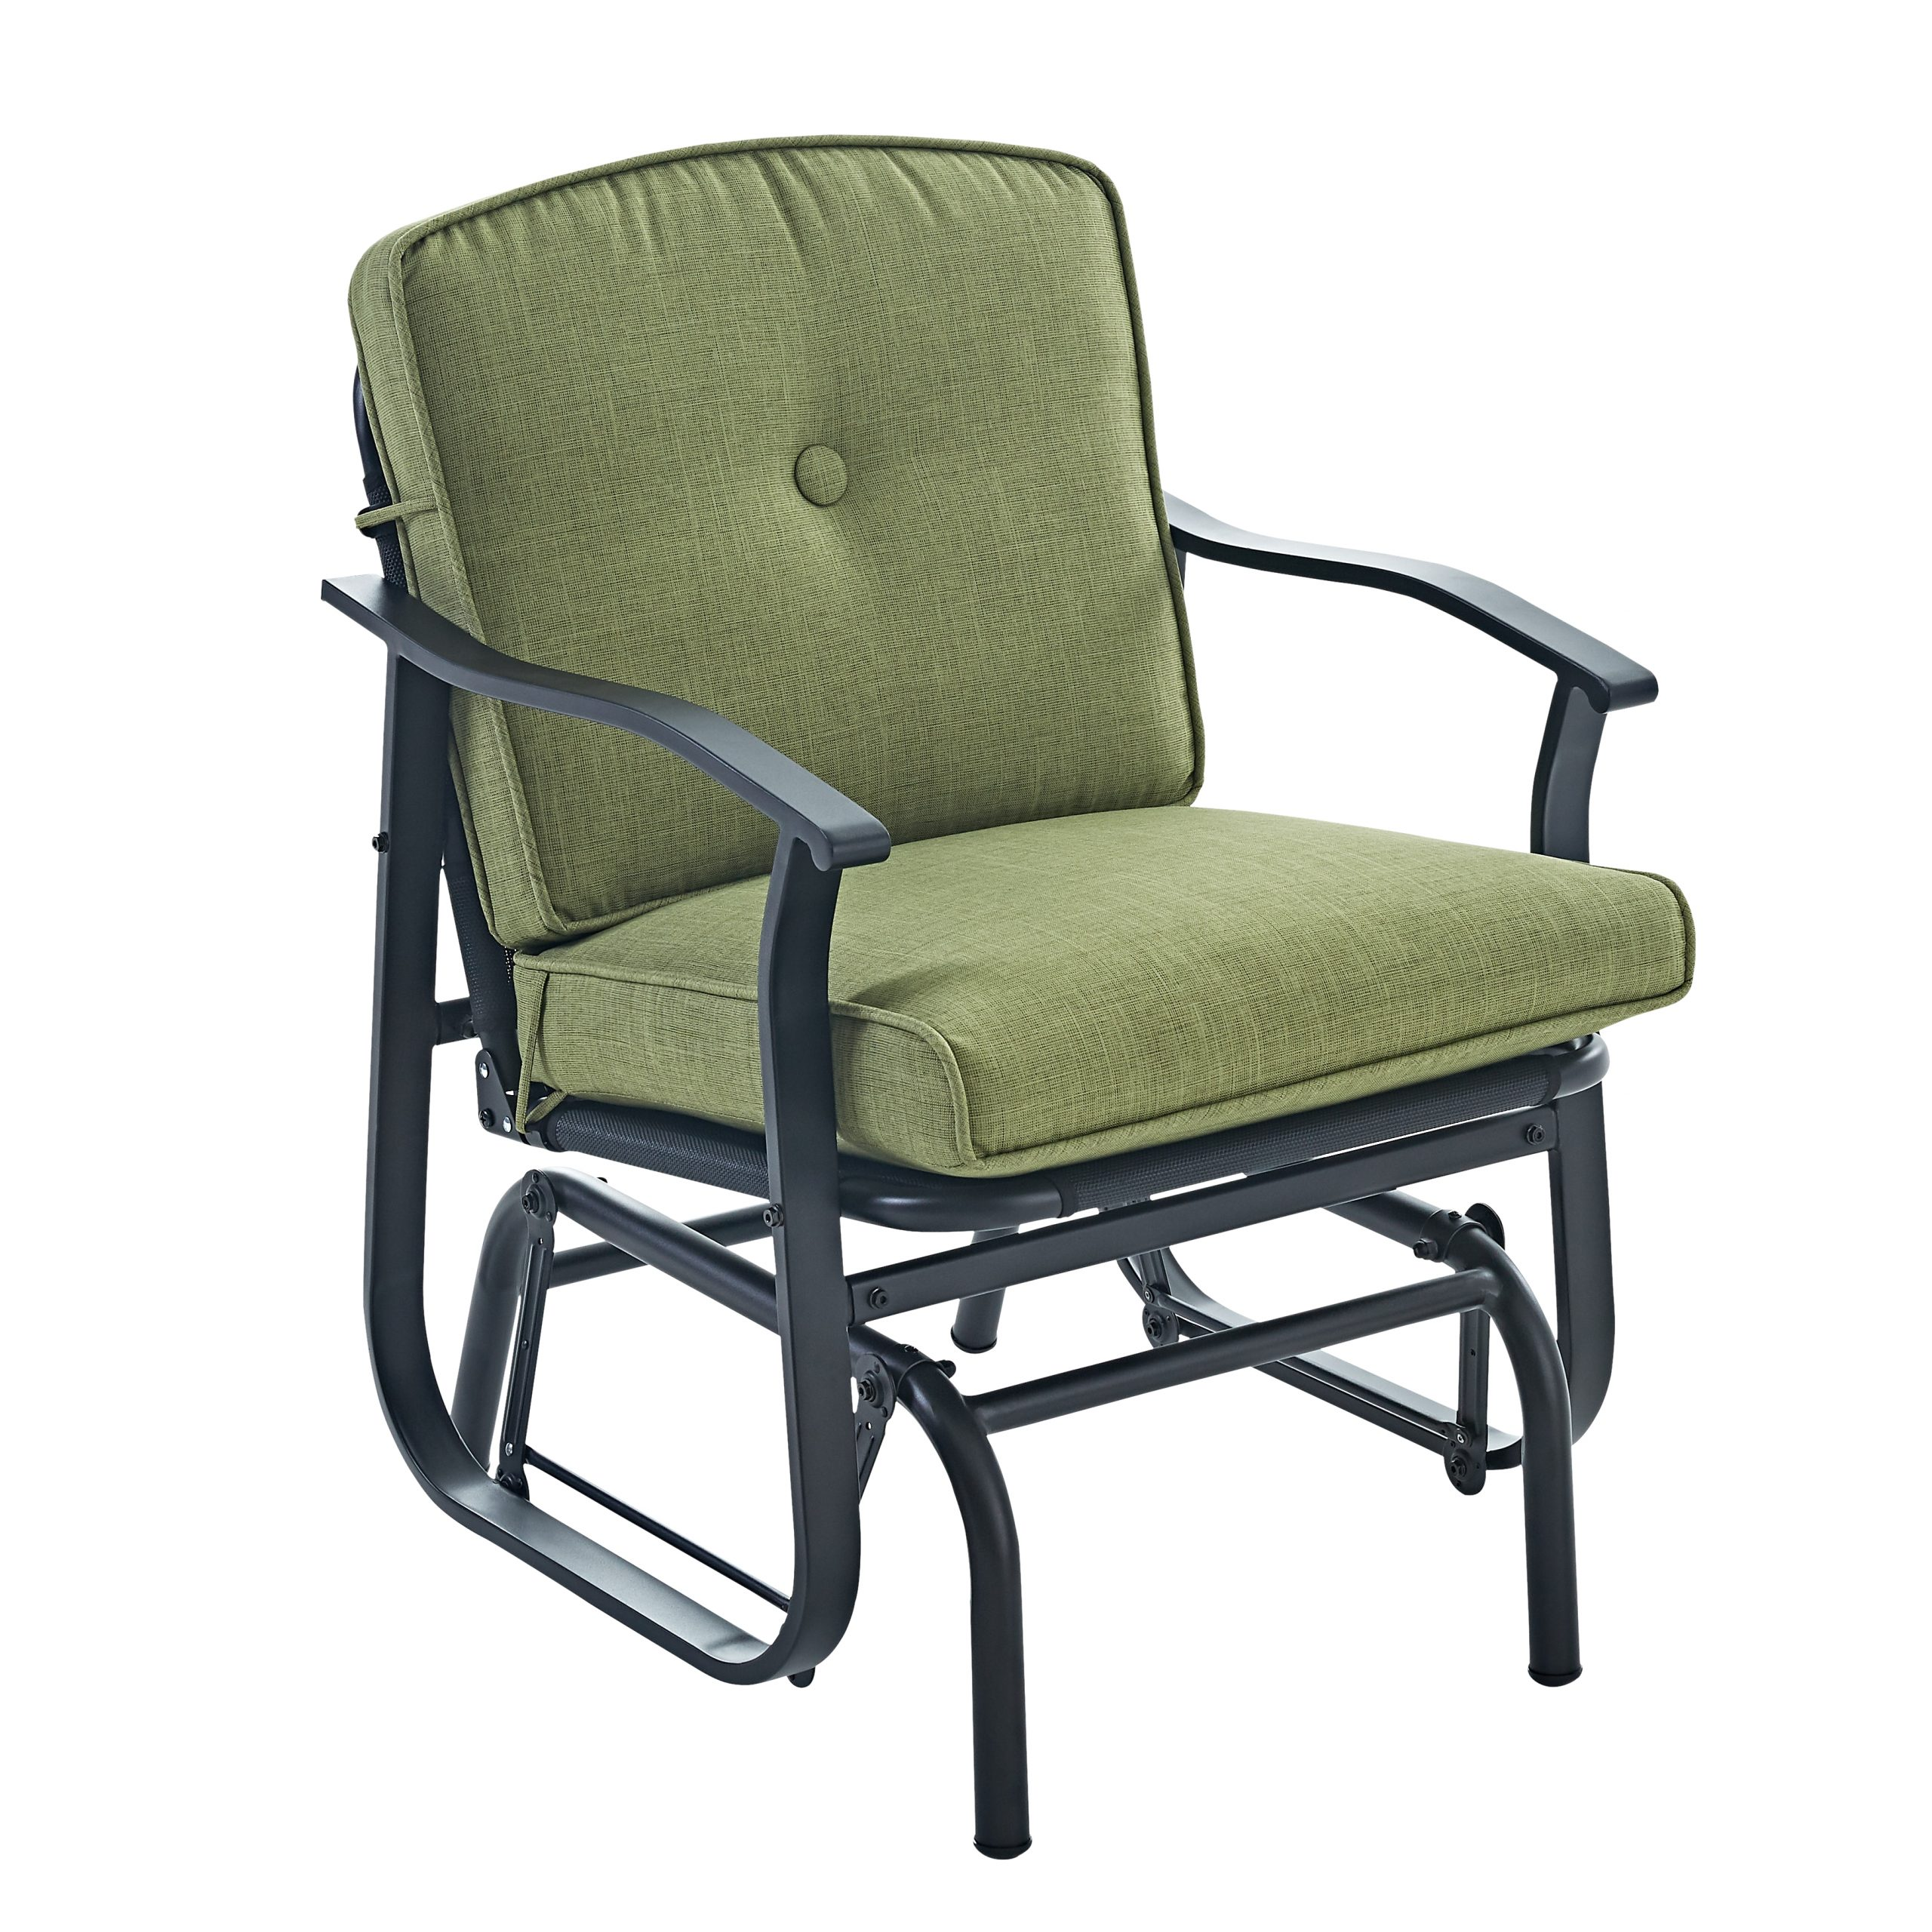 Preferred Outdoor Loveseat Gliders With Cushion For Blue Patio, Lawn & Garden Mainstay Belden Park Outdoor (View 20 of 30)